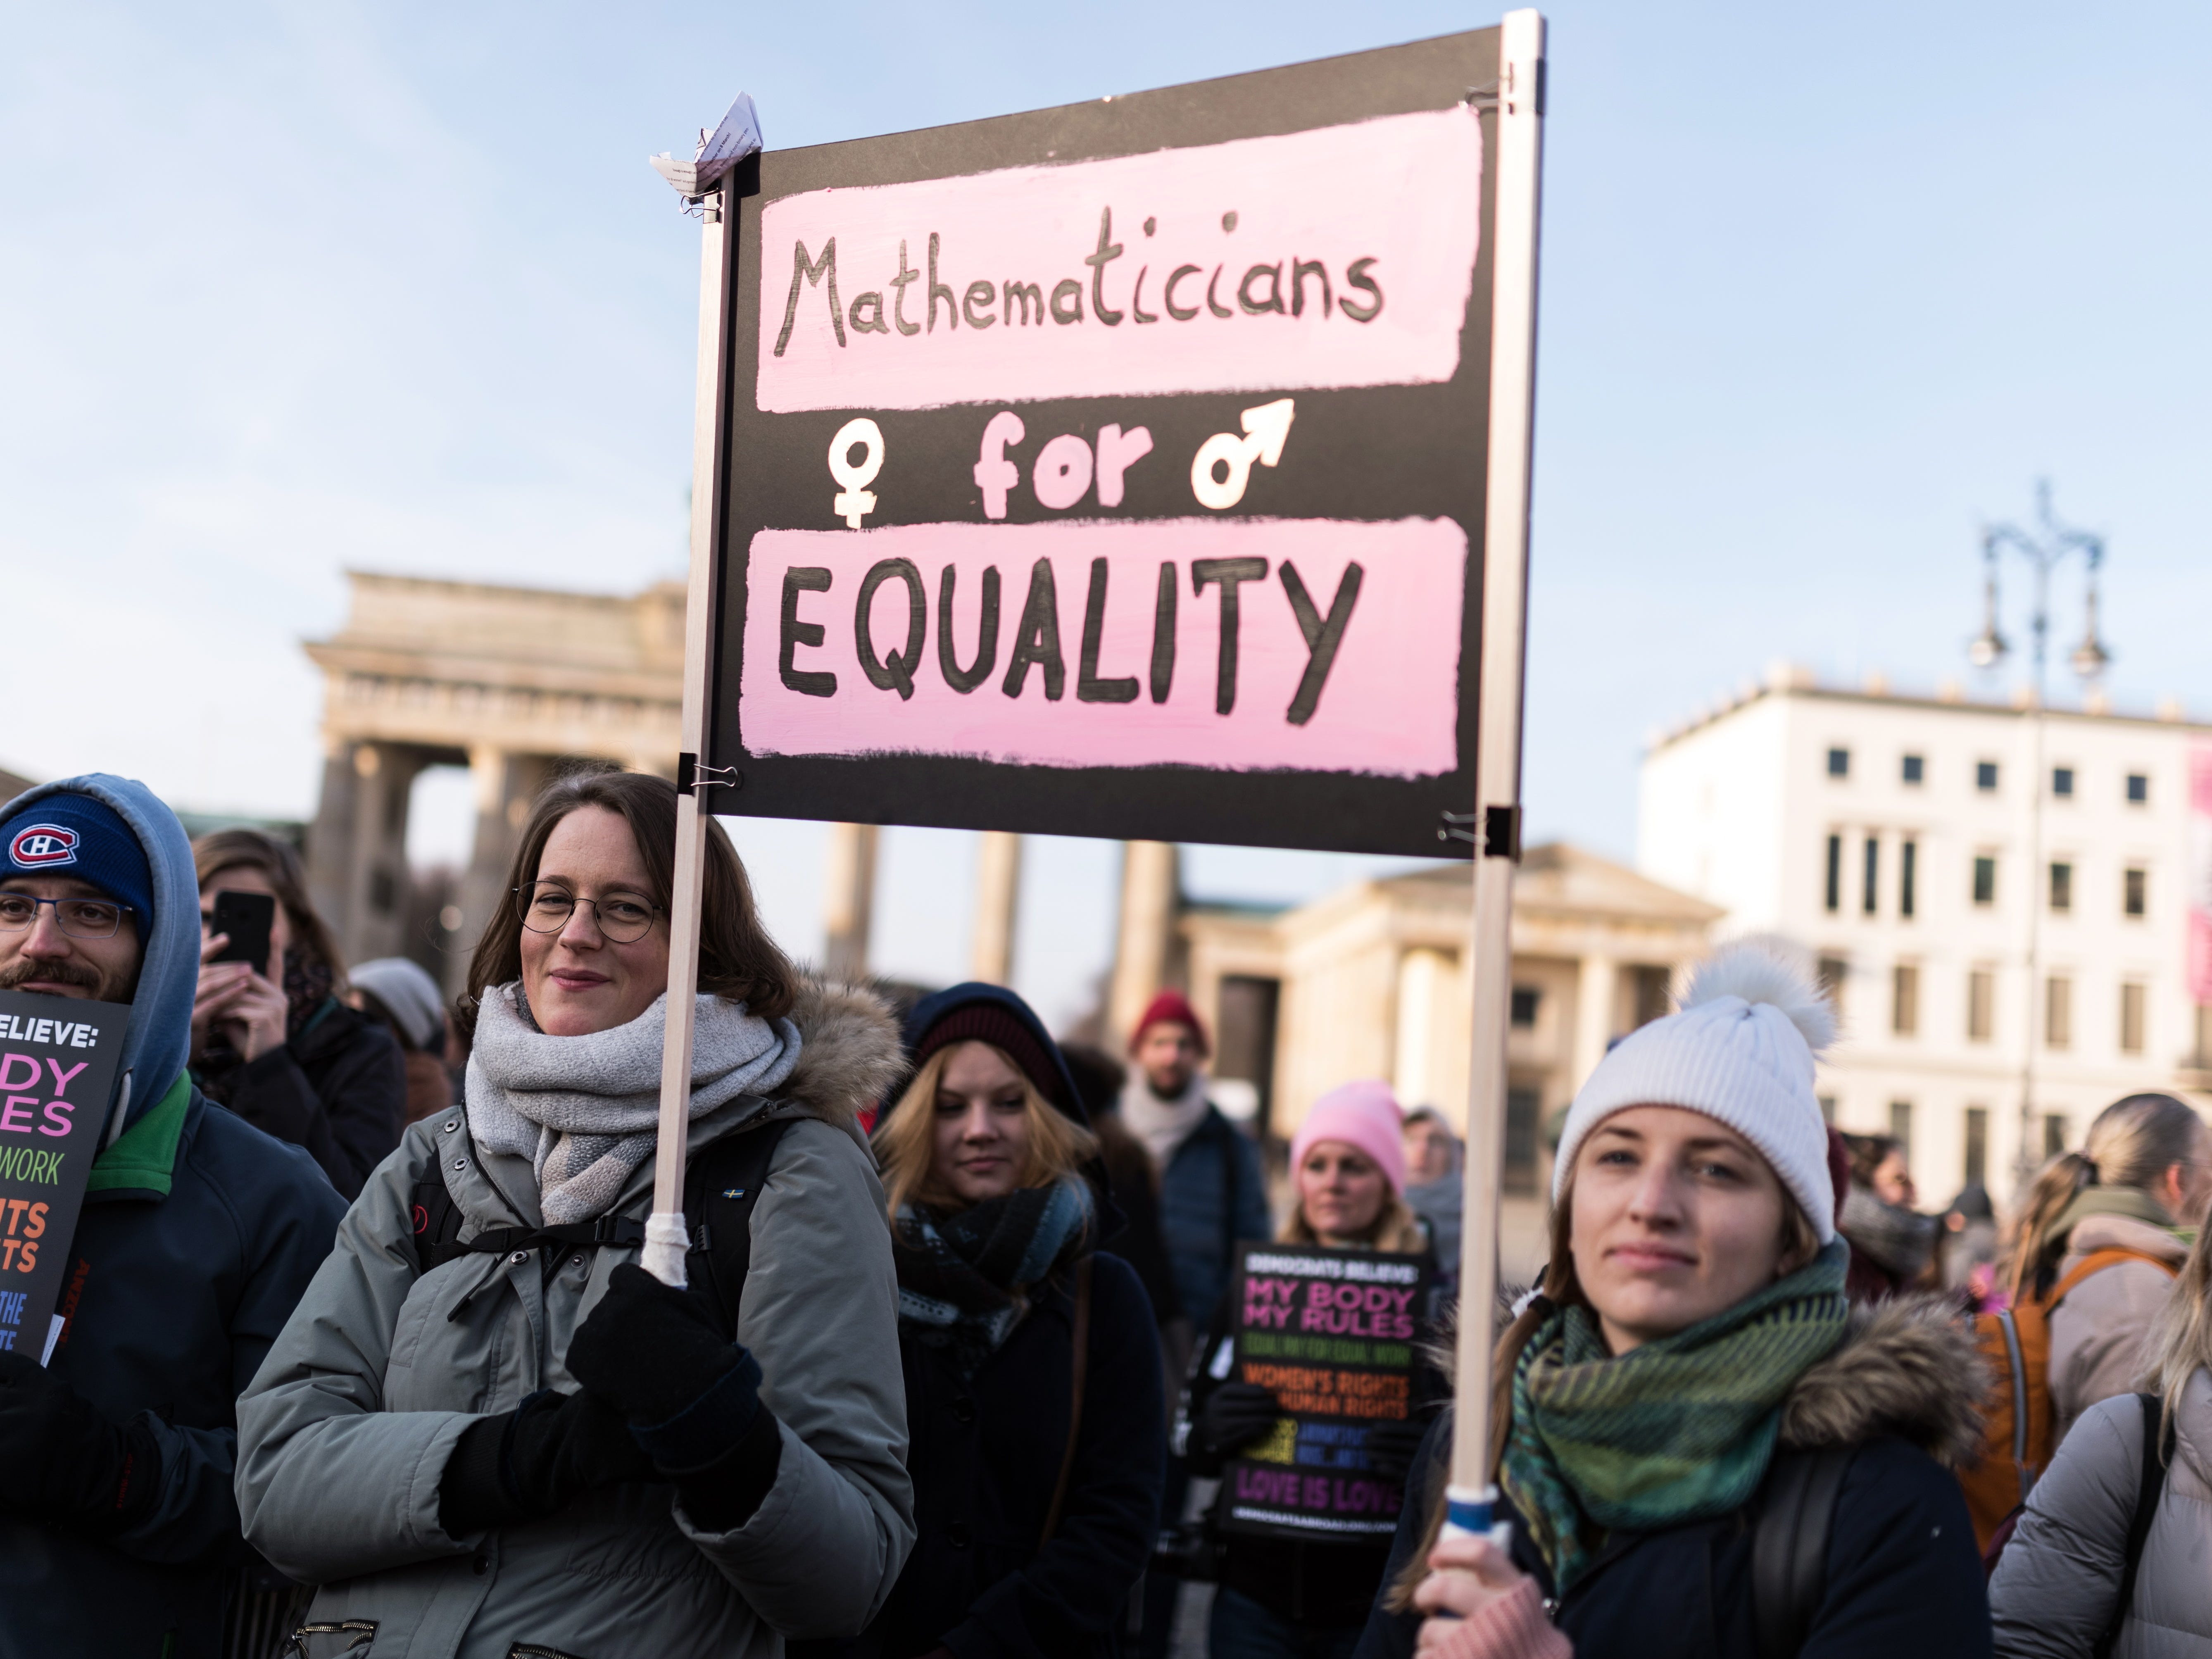 Two women hold a sign reading 'Mathematicians for equality' during the 2019 Wome's March in Berlin, Germany on Jan. 19, 2019. The march is to support women's rights, against racism and violence against women.